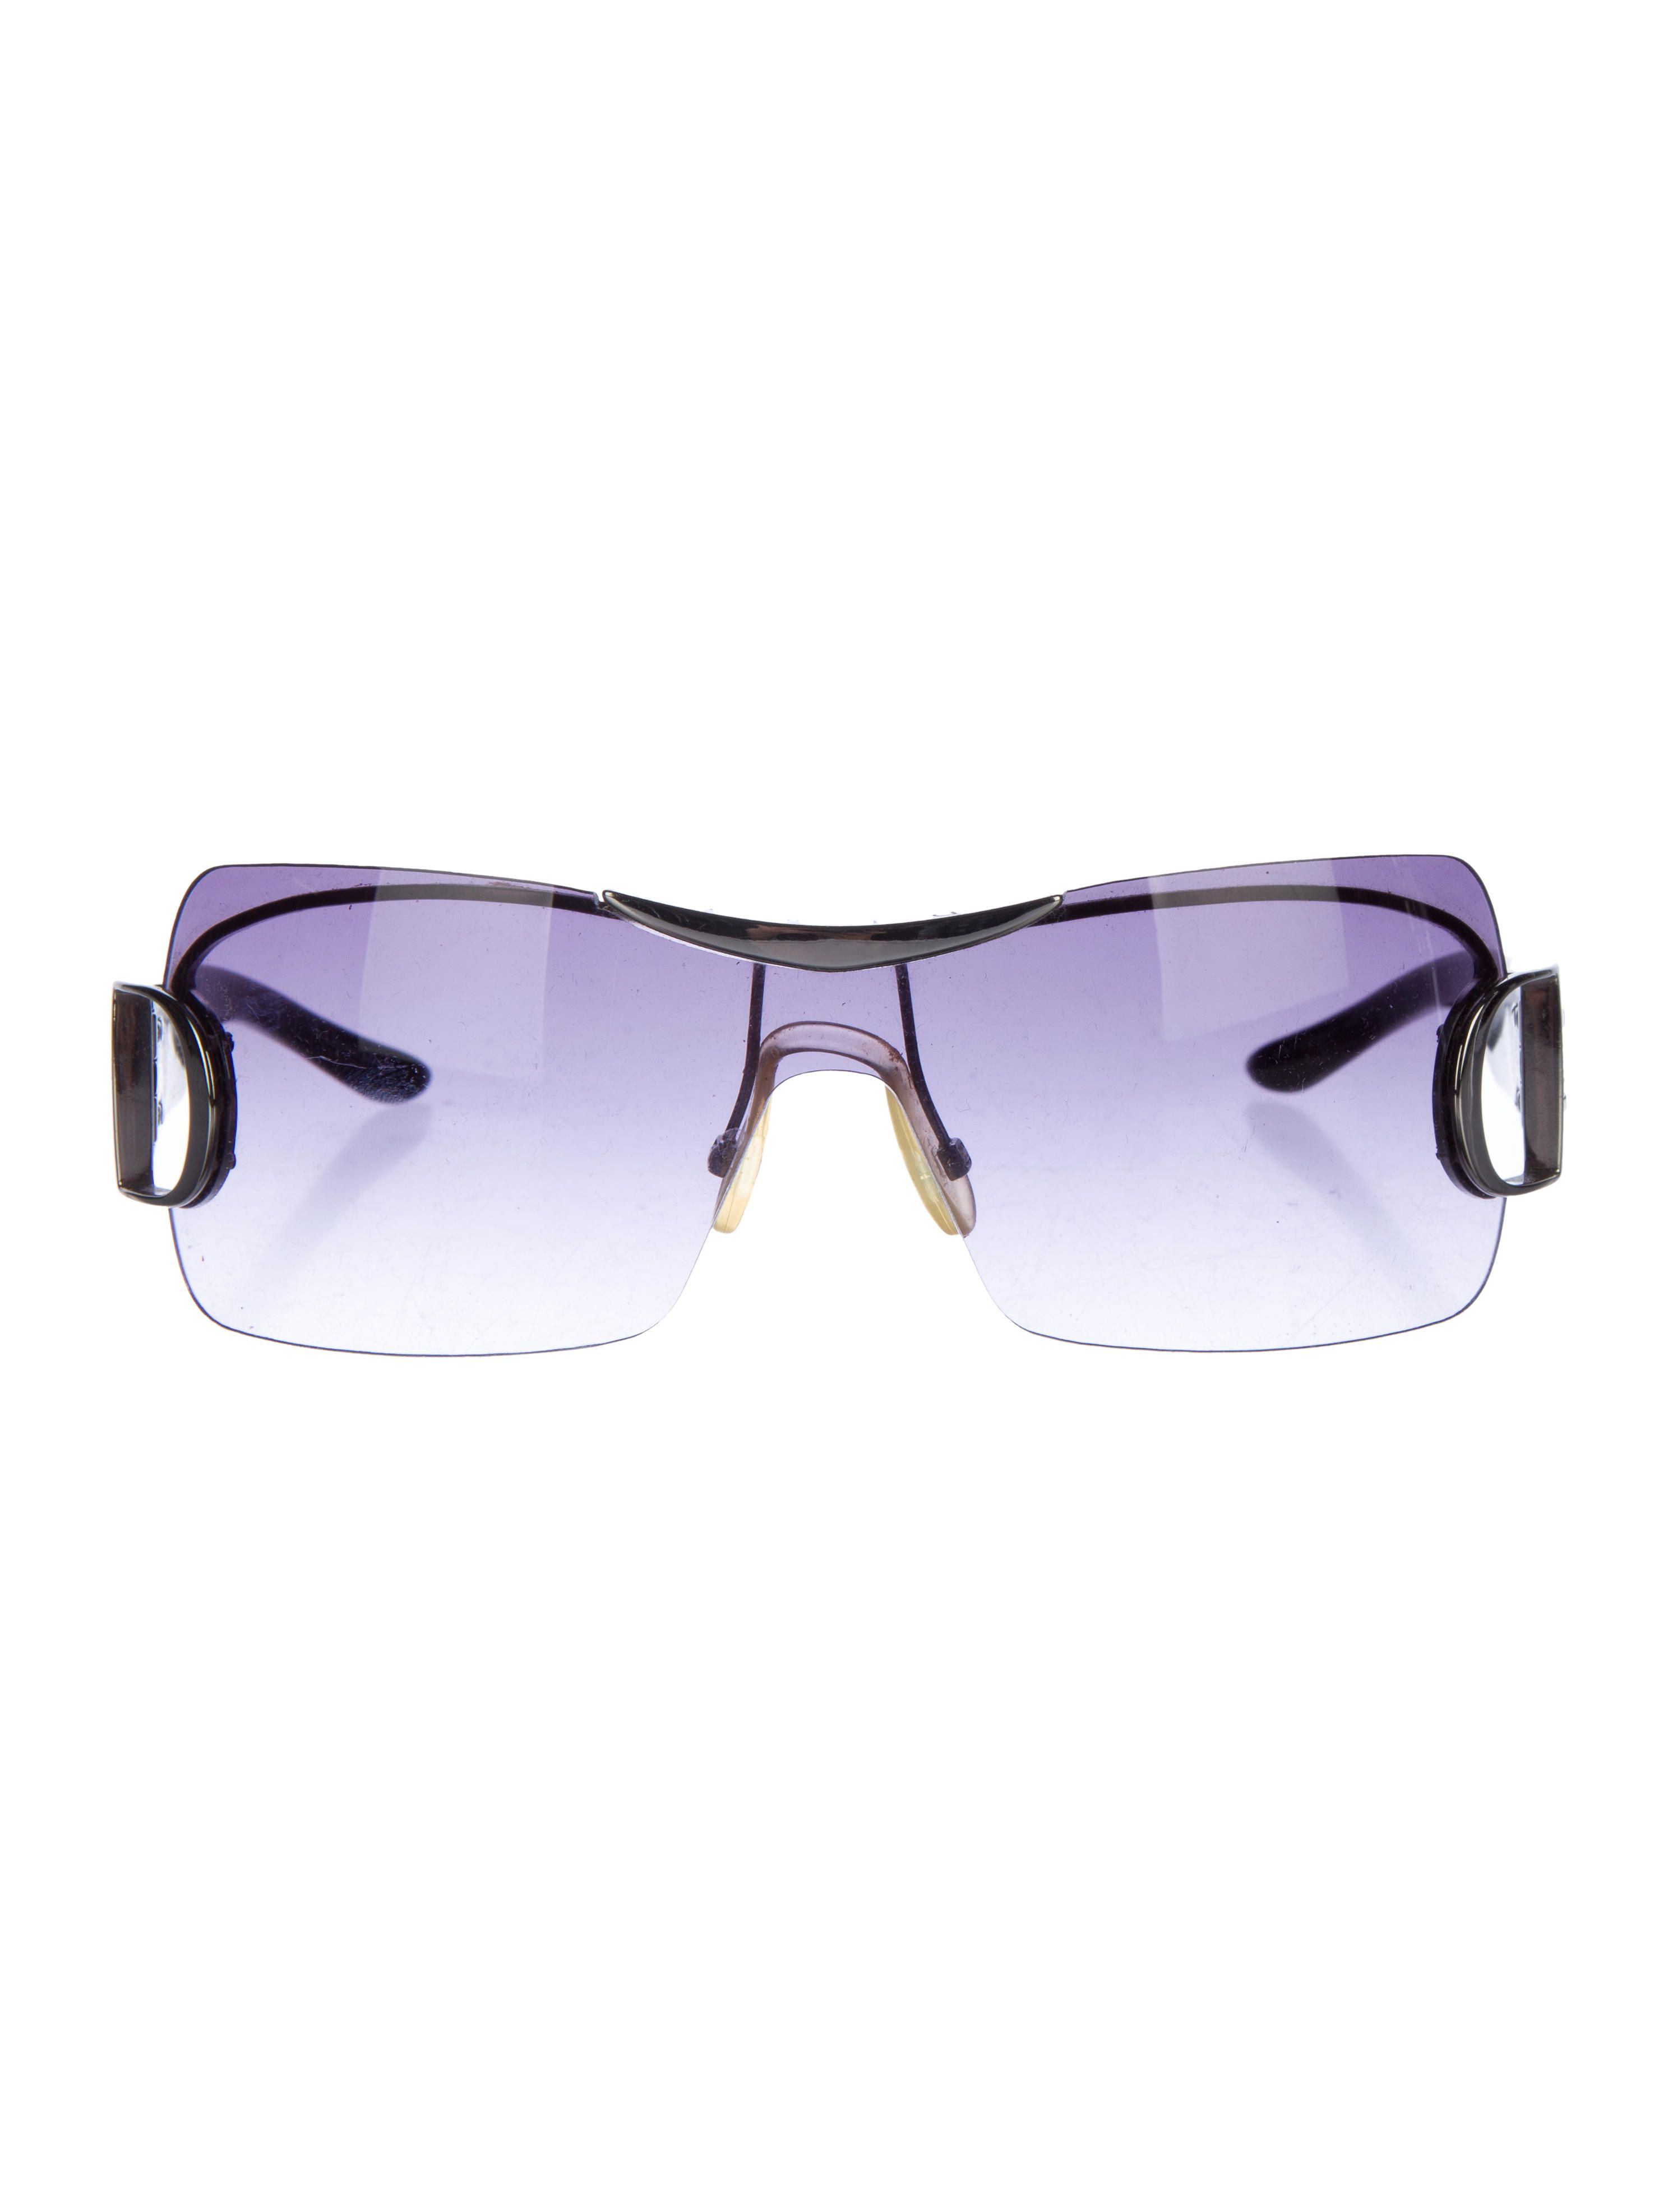 301bf79492 Gunmetal Christian Dior rimless shield sunglasses with purple gradient  lenses